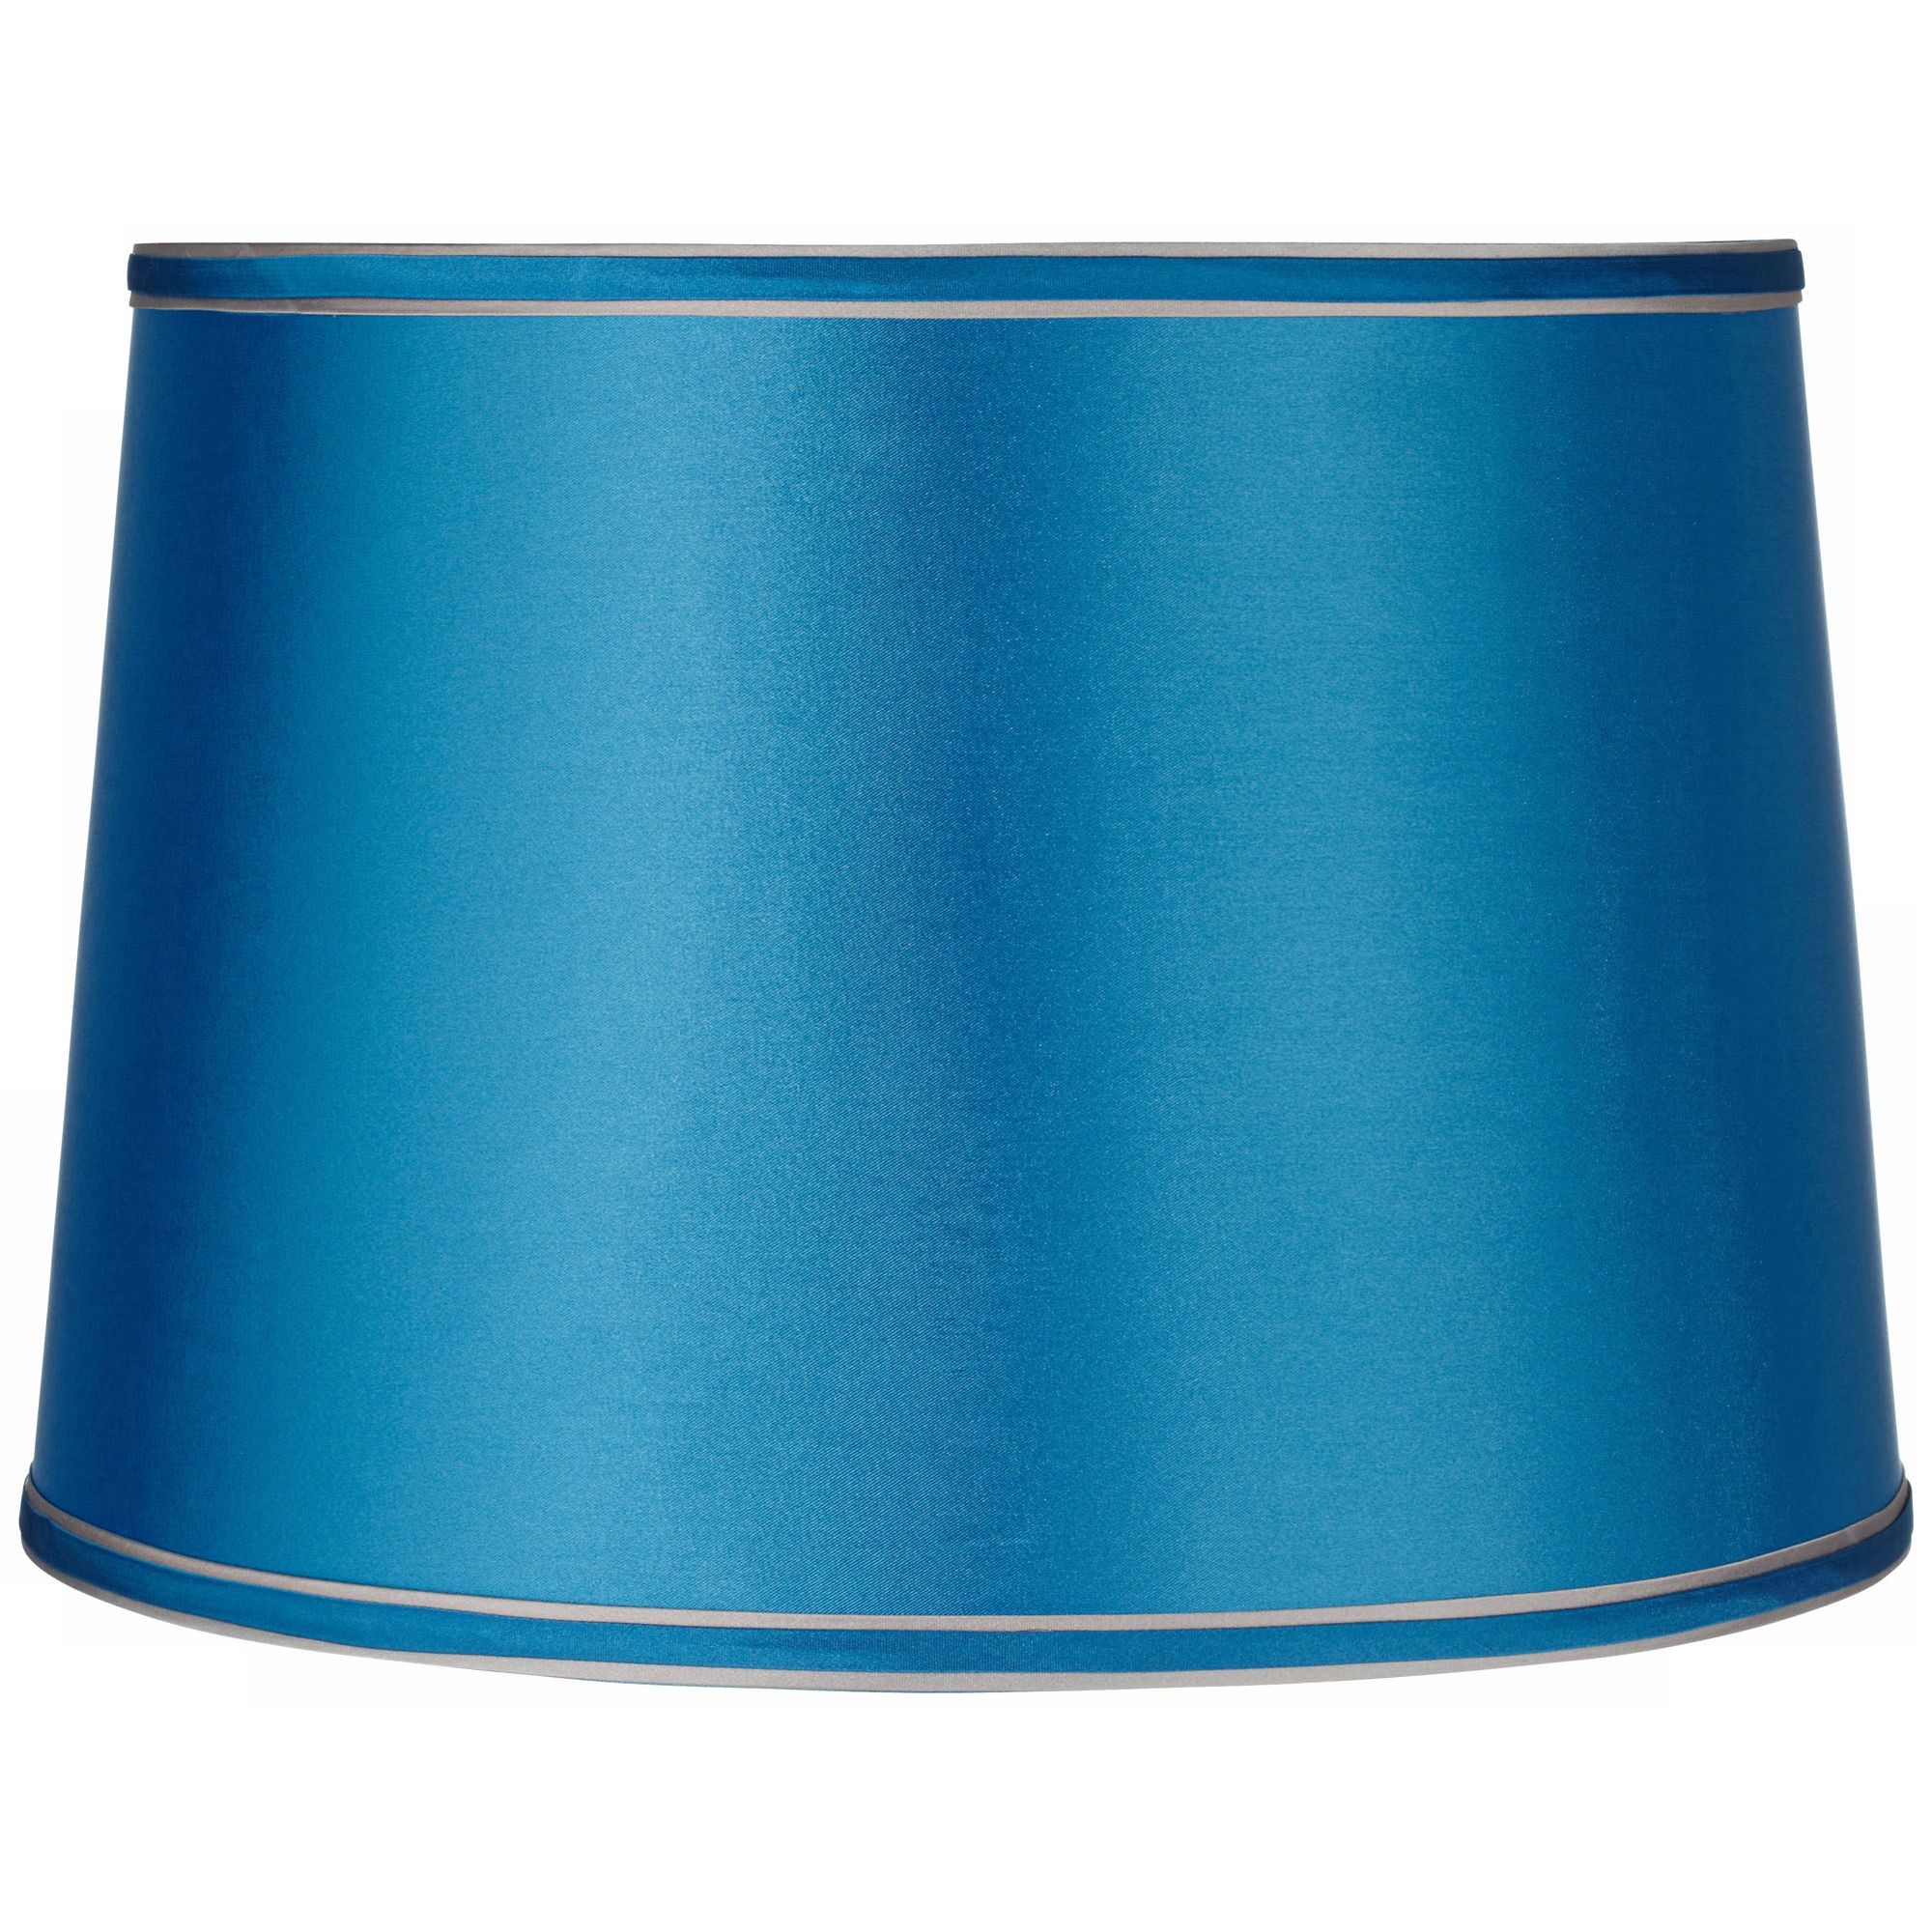 Brentwood Sydnee Satin Turquoise Drum Lamp Shade 14X16x11 (Spider)